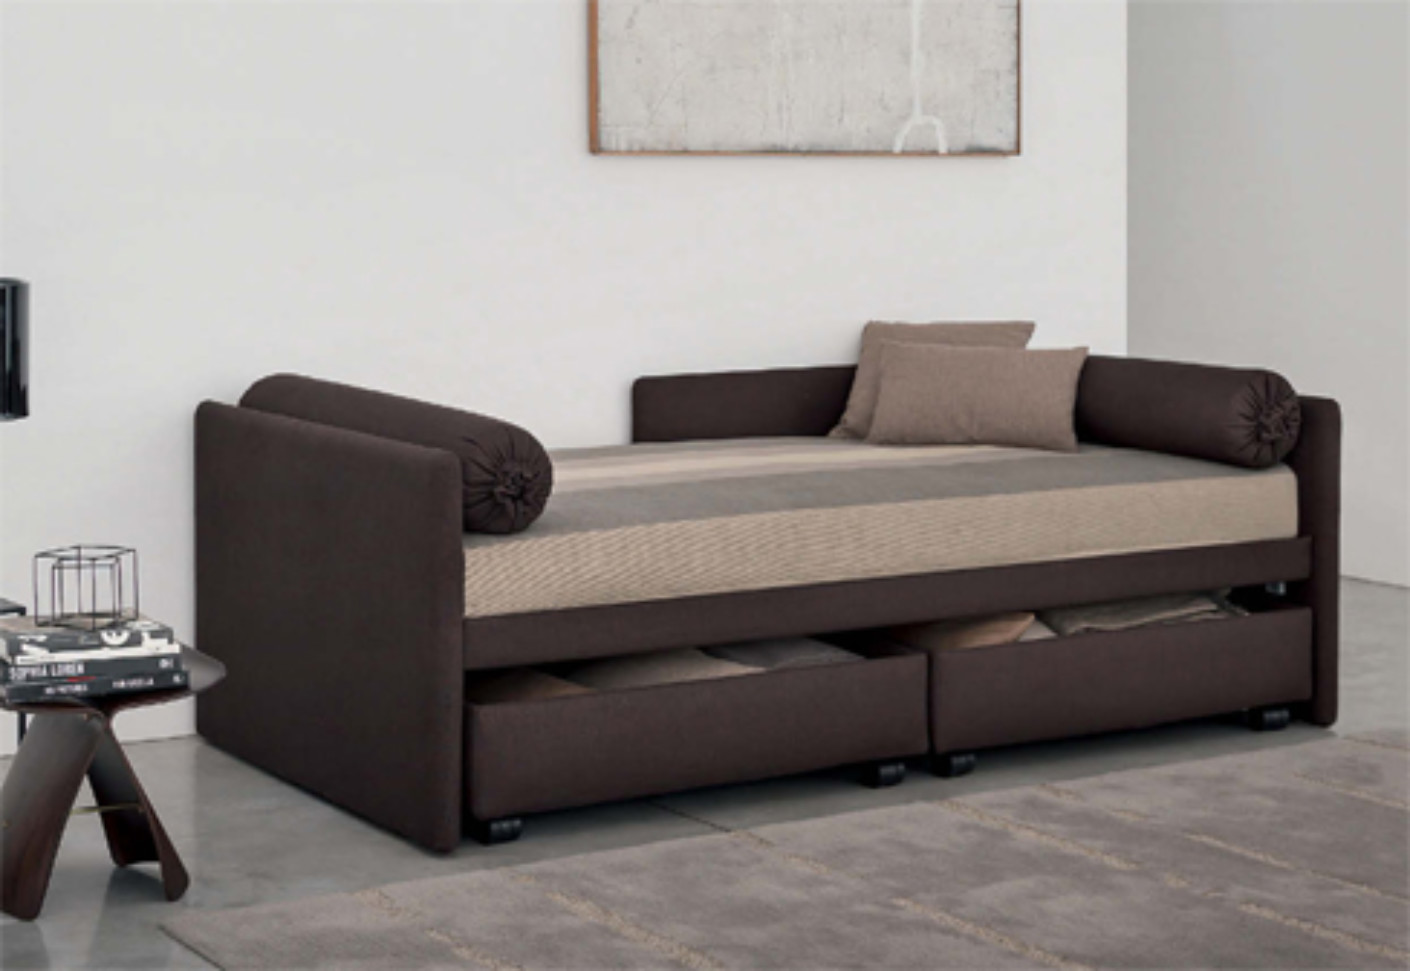 Image Result For Sofa Bed With Storage Drawer